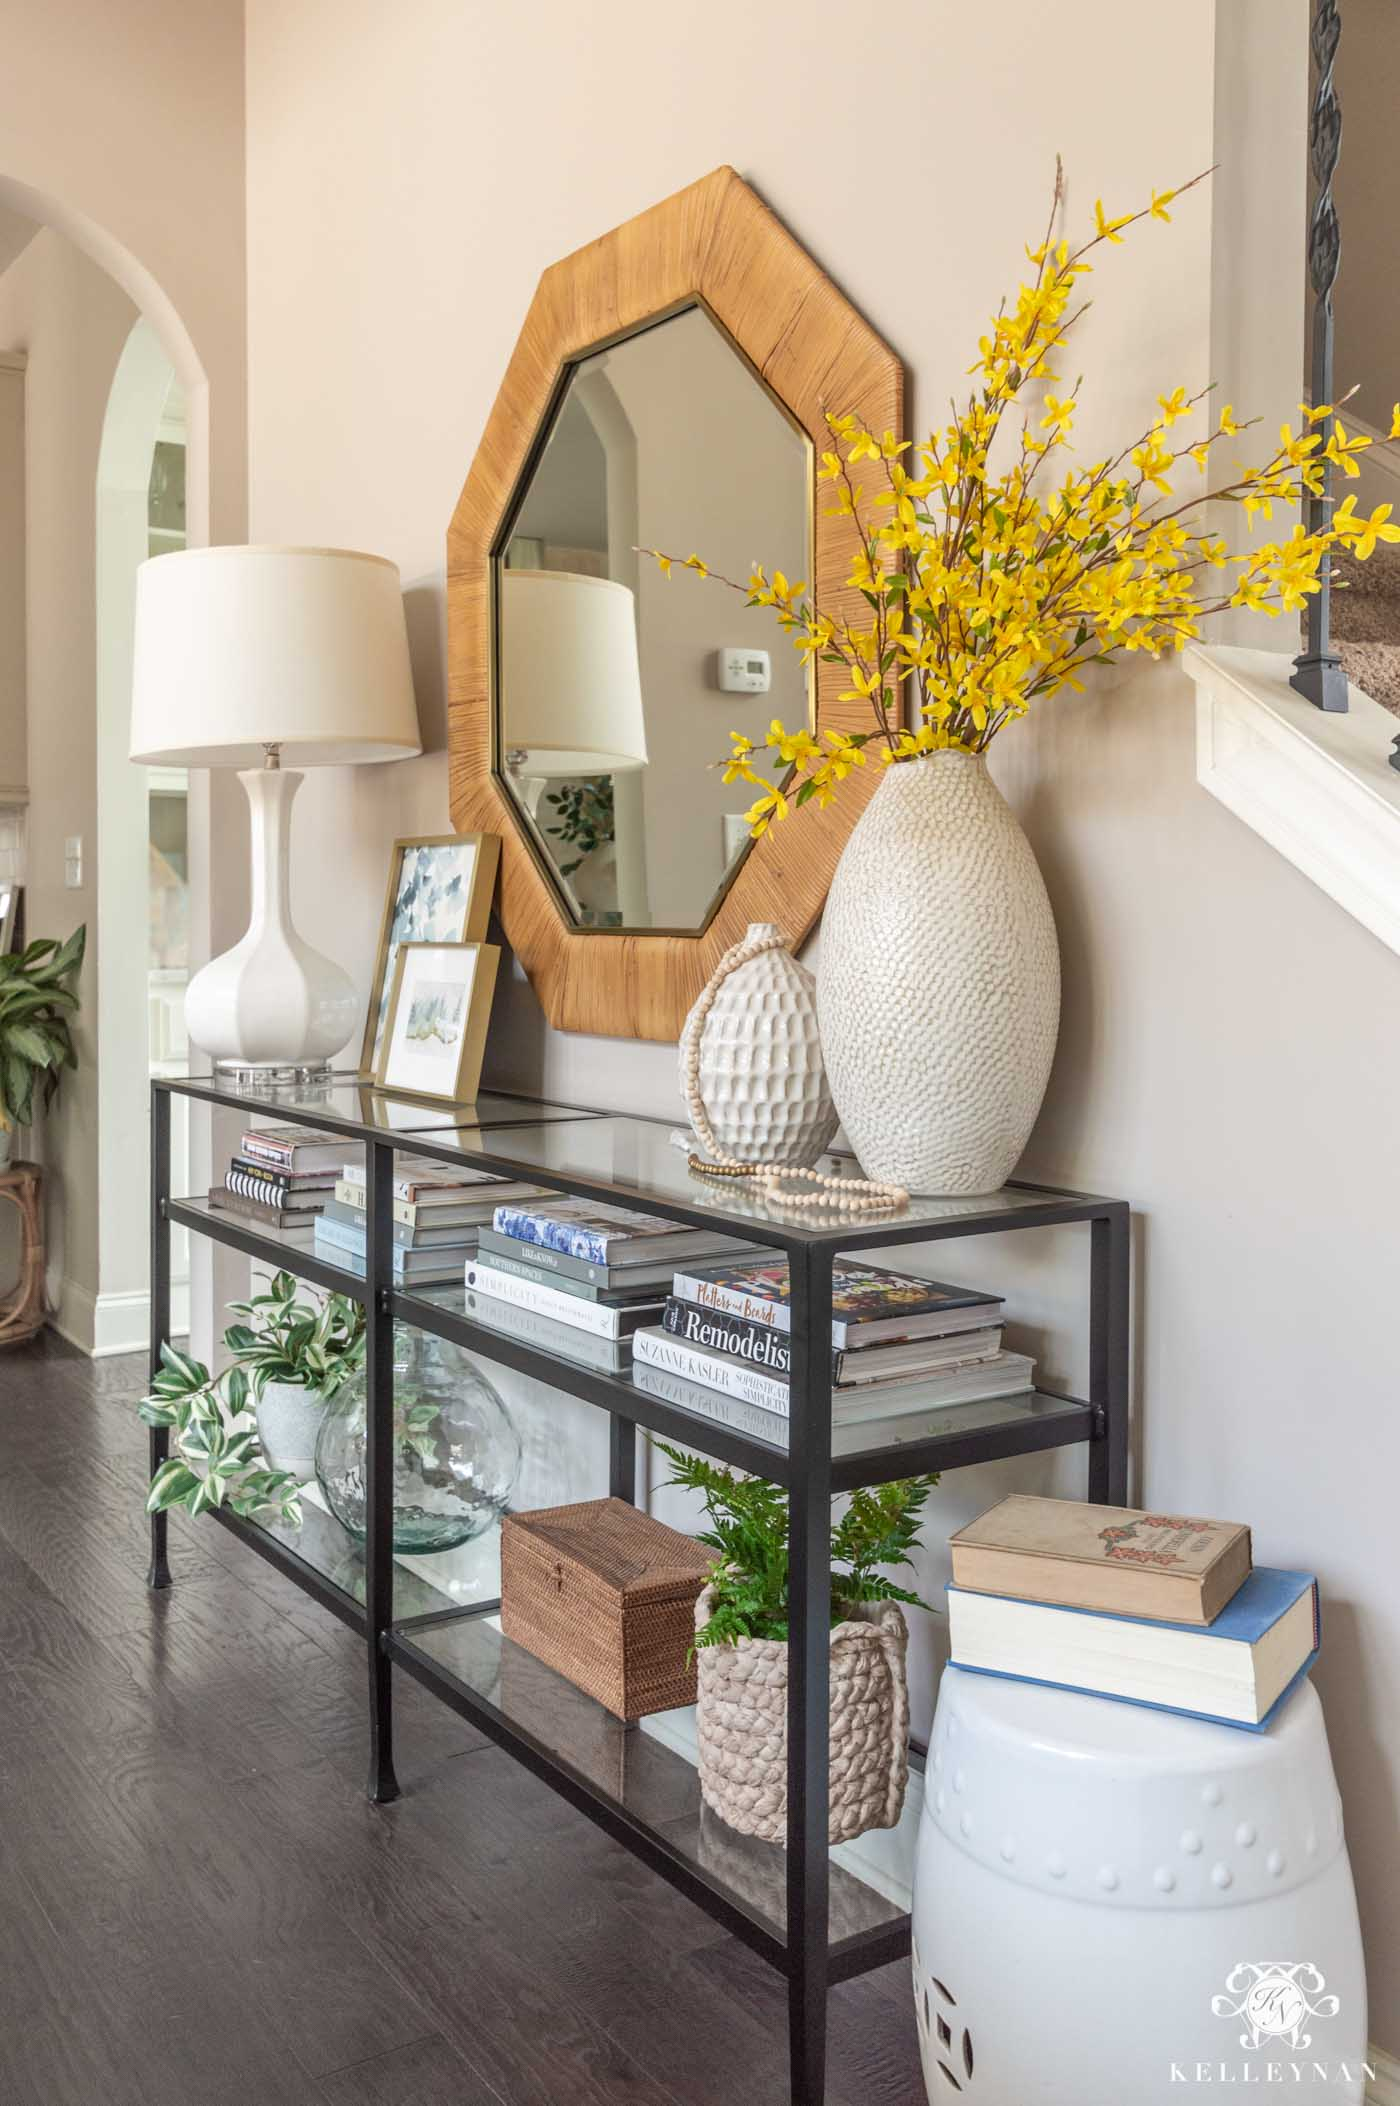 How to Style and Decorate a Console Table for Spring